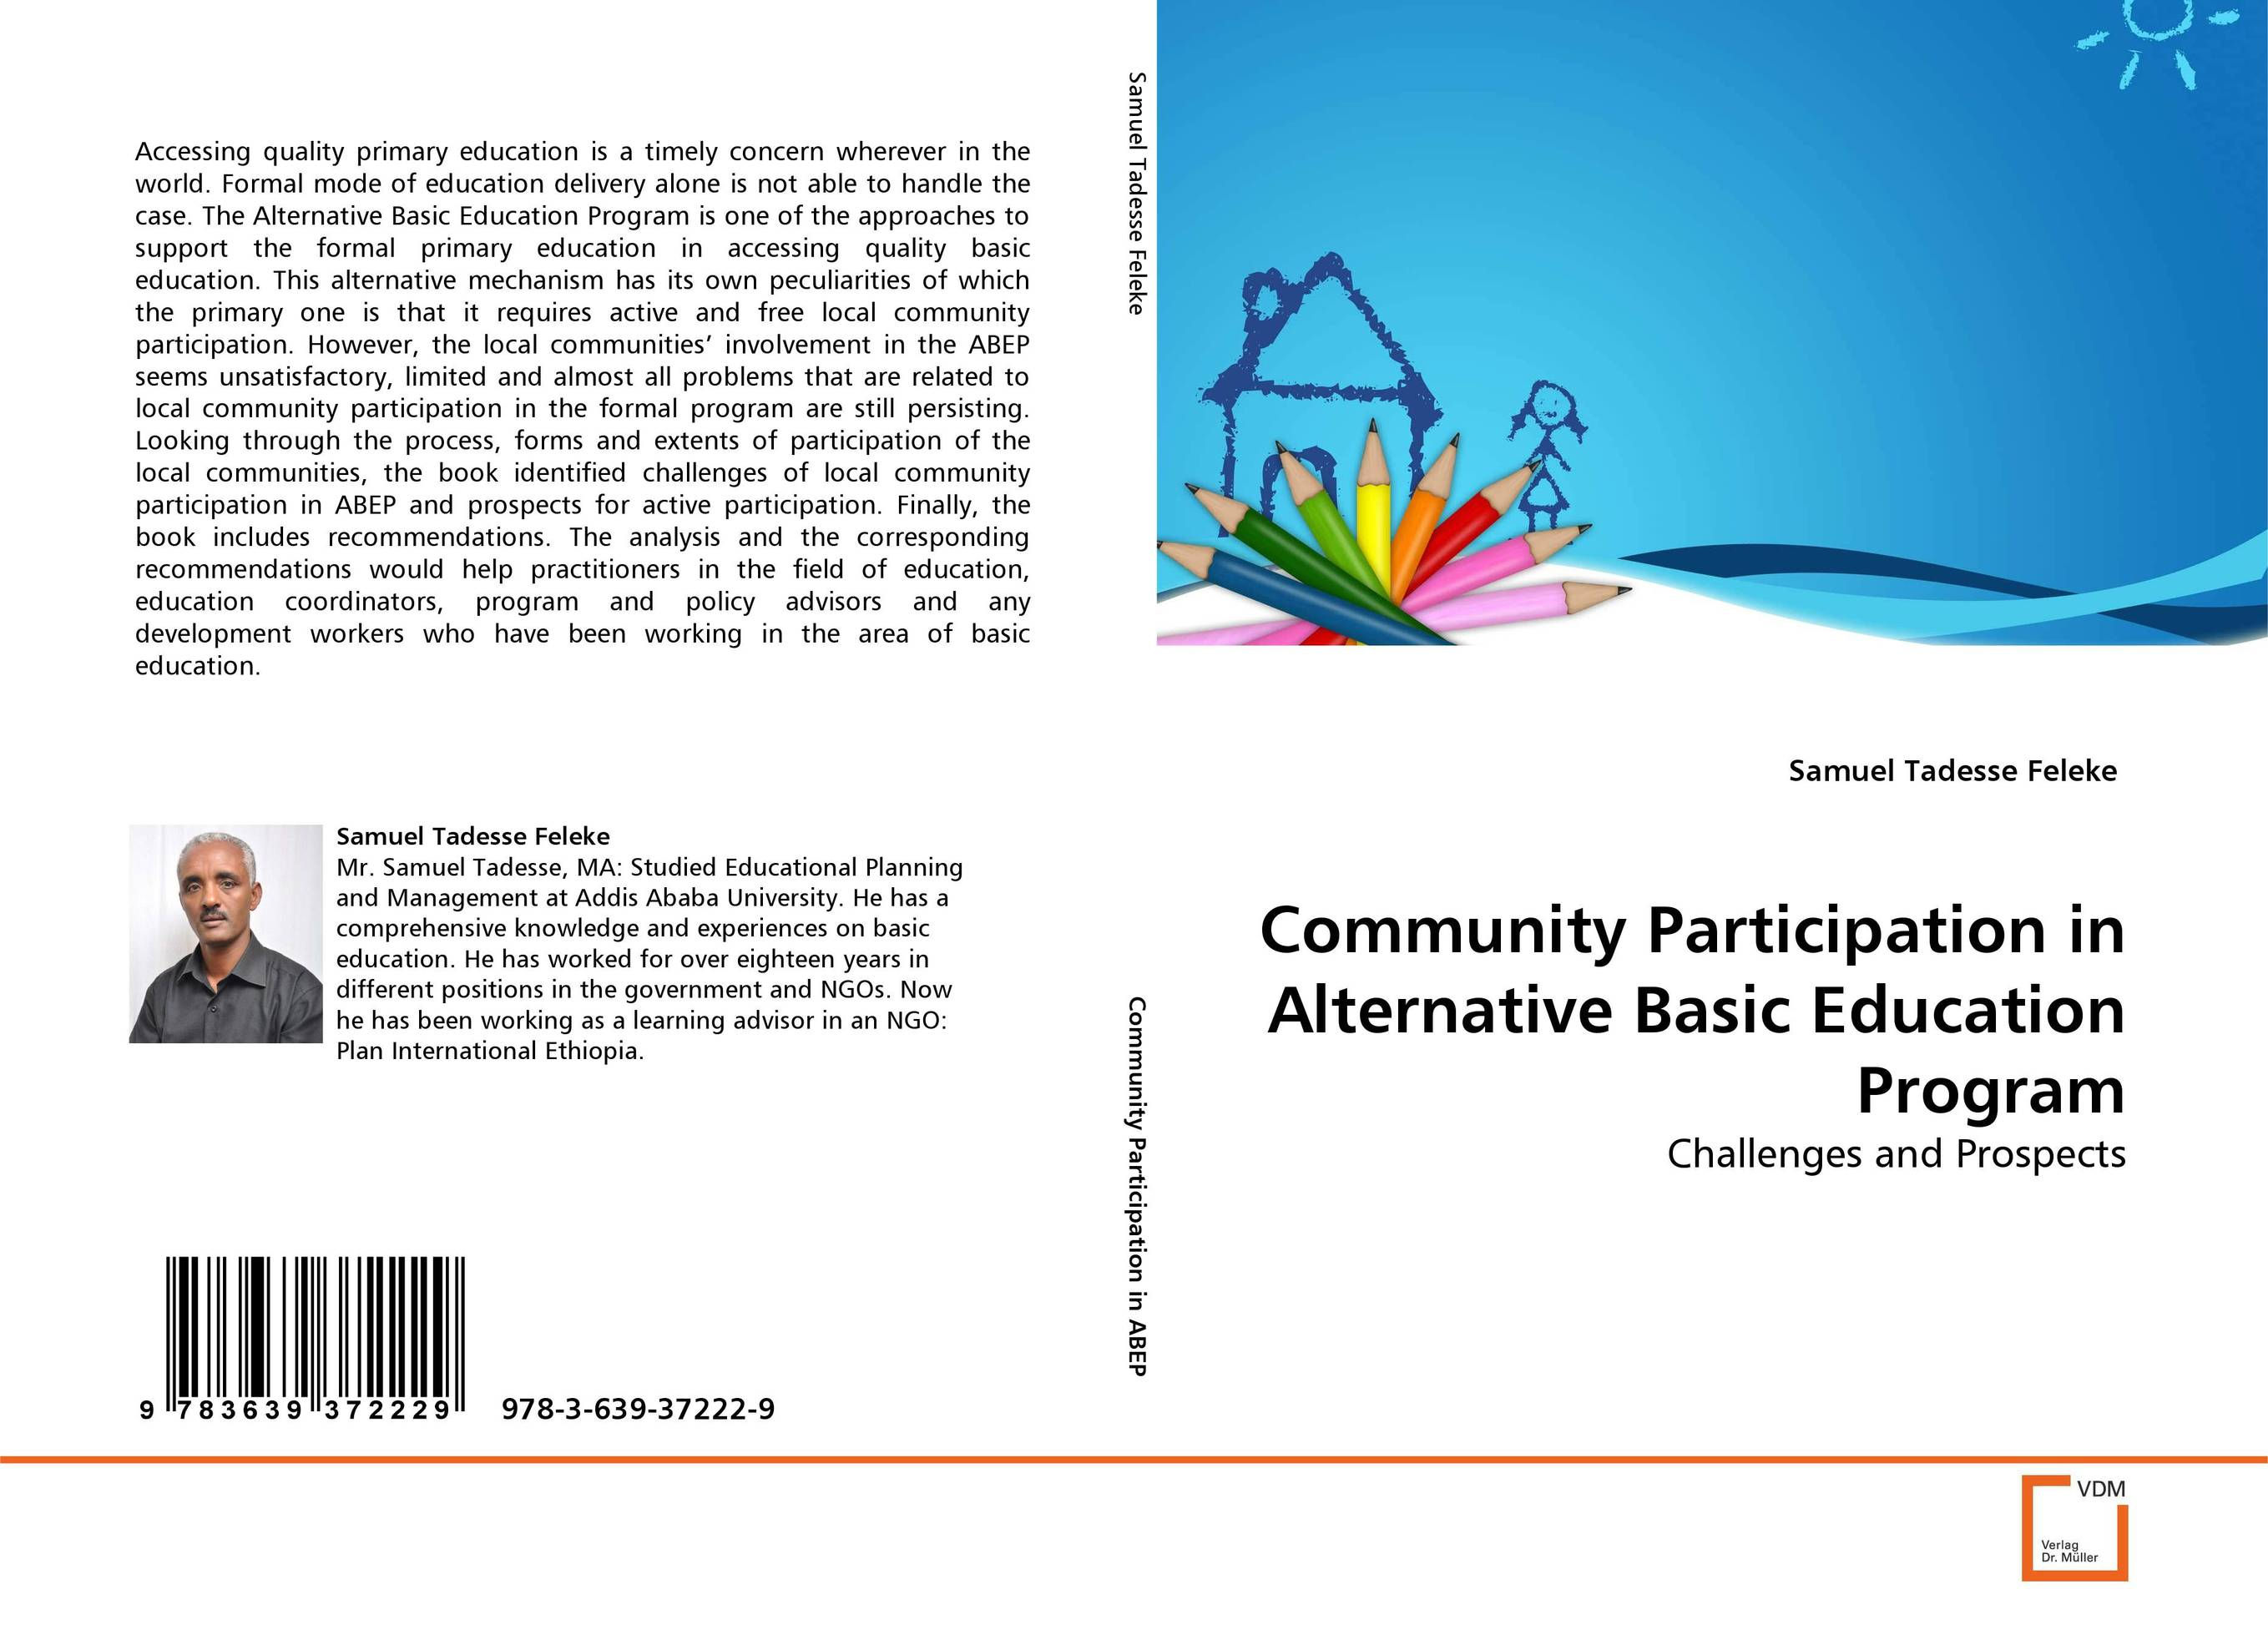 Community Participation in Alternative Basic Education Program an analysis of quality universal primary education in uganda